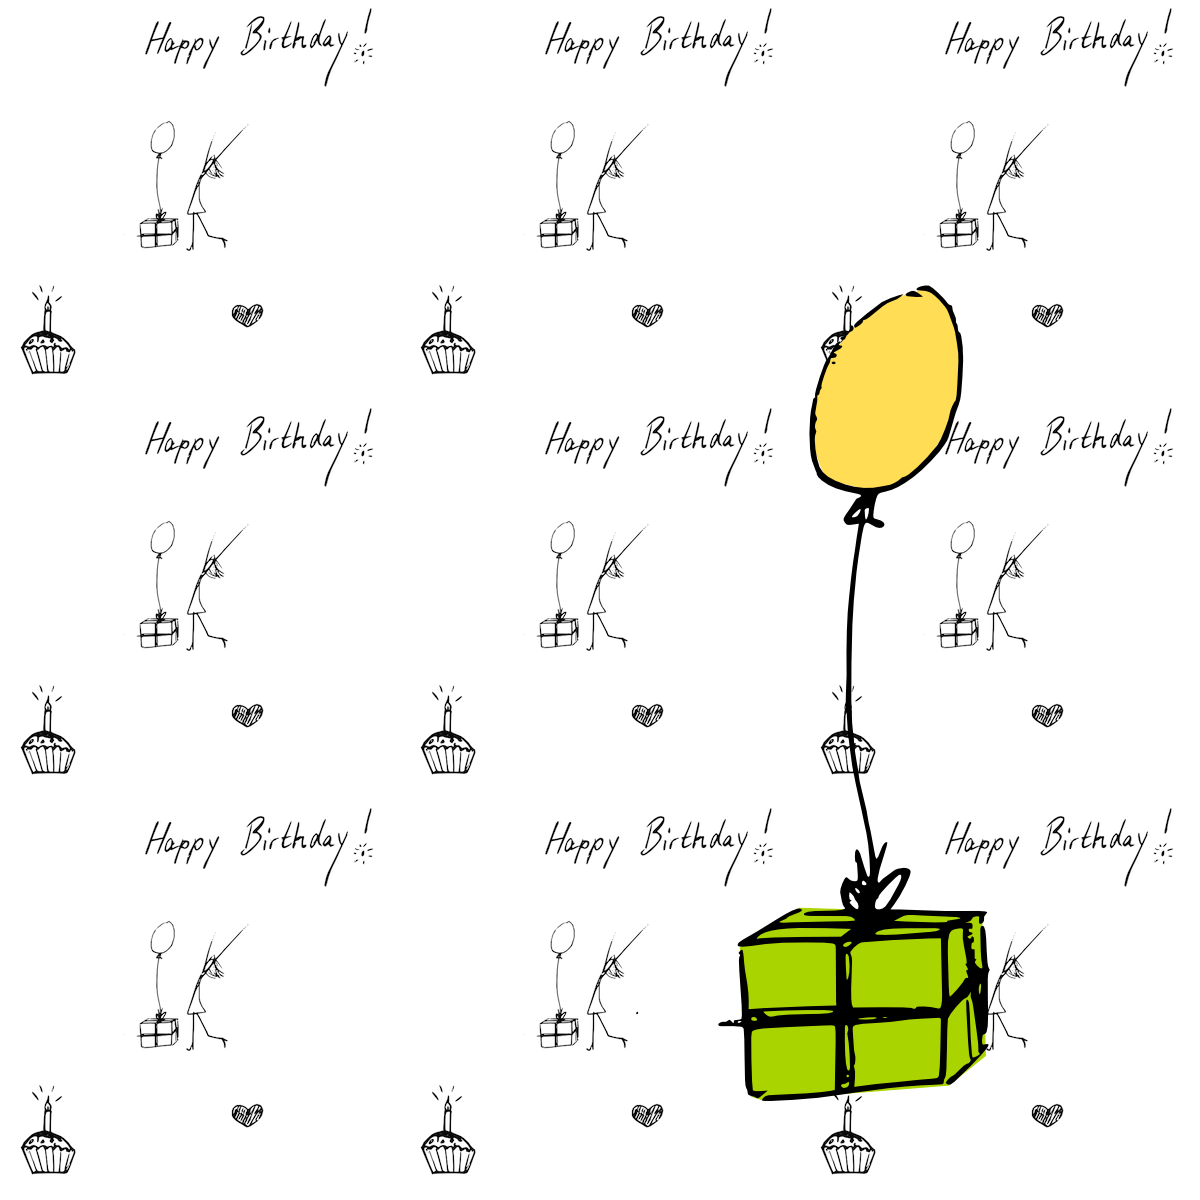 Today again doodled a bit and created this free digital happy birthday